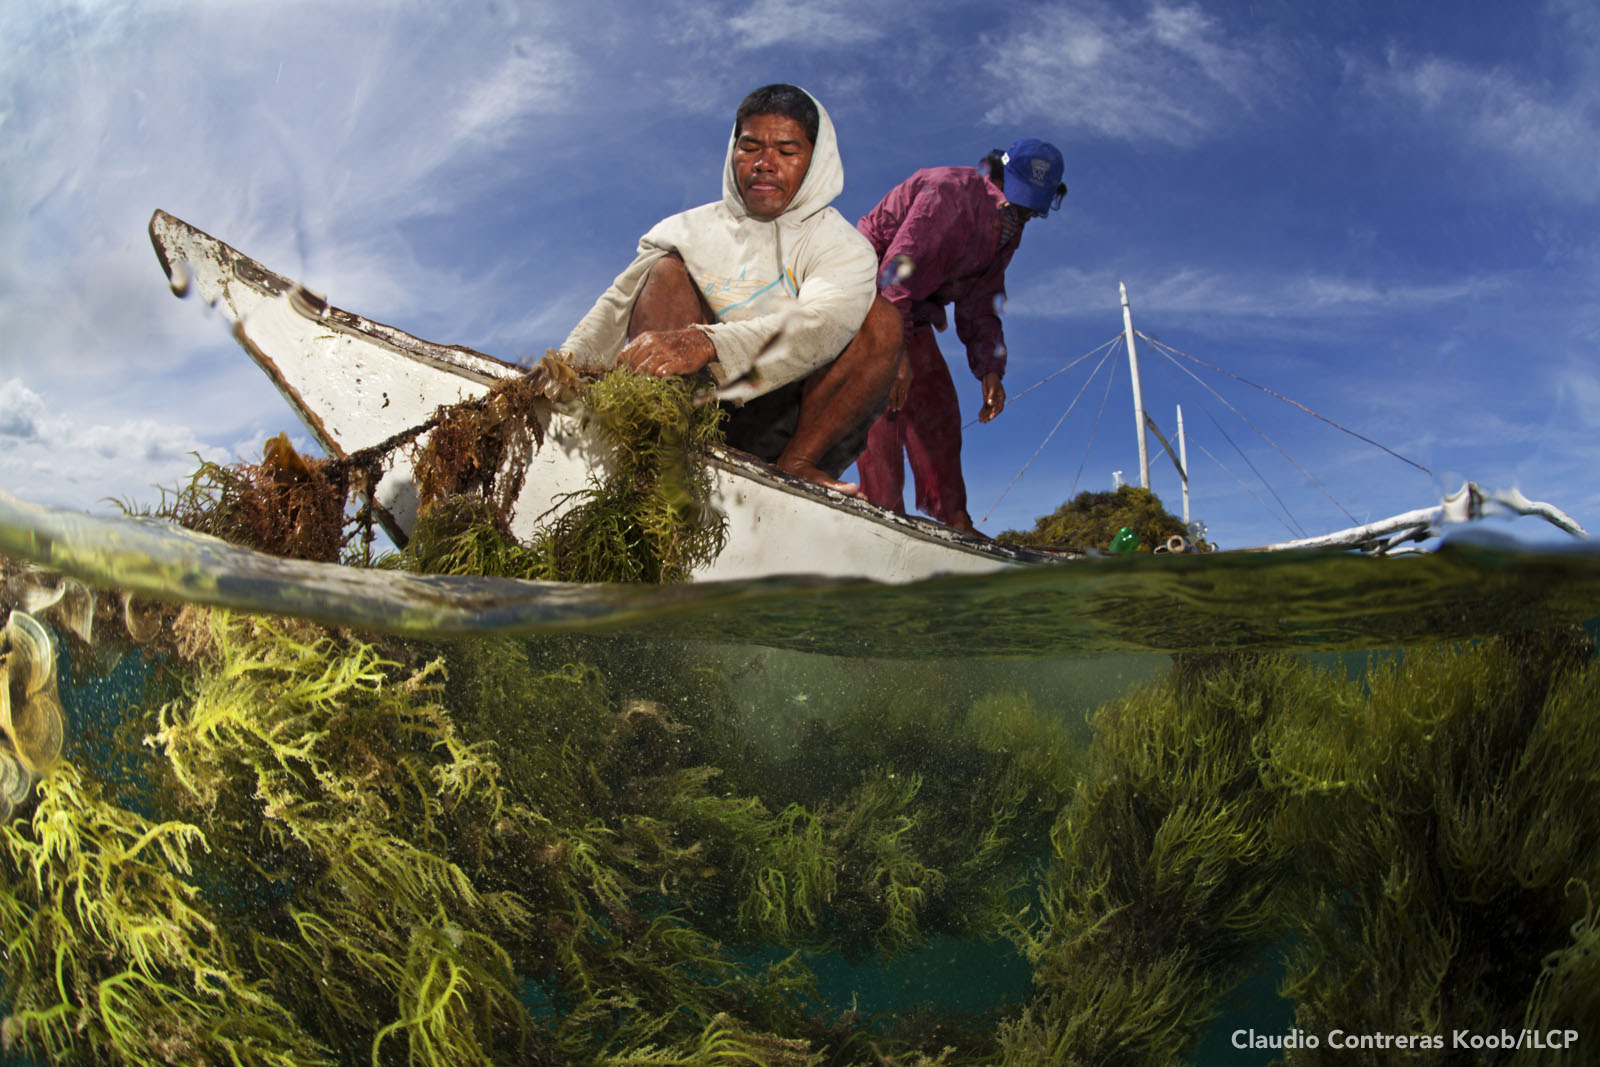 Seaweed farmers harvest their crop. Seaweed farming has become a valuable alternative livelihood on Danajon Bank.  Claudio Contreras Koob/iLCP